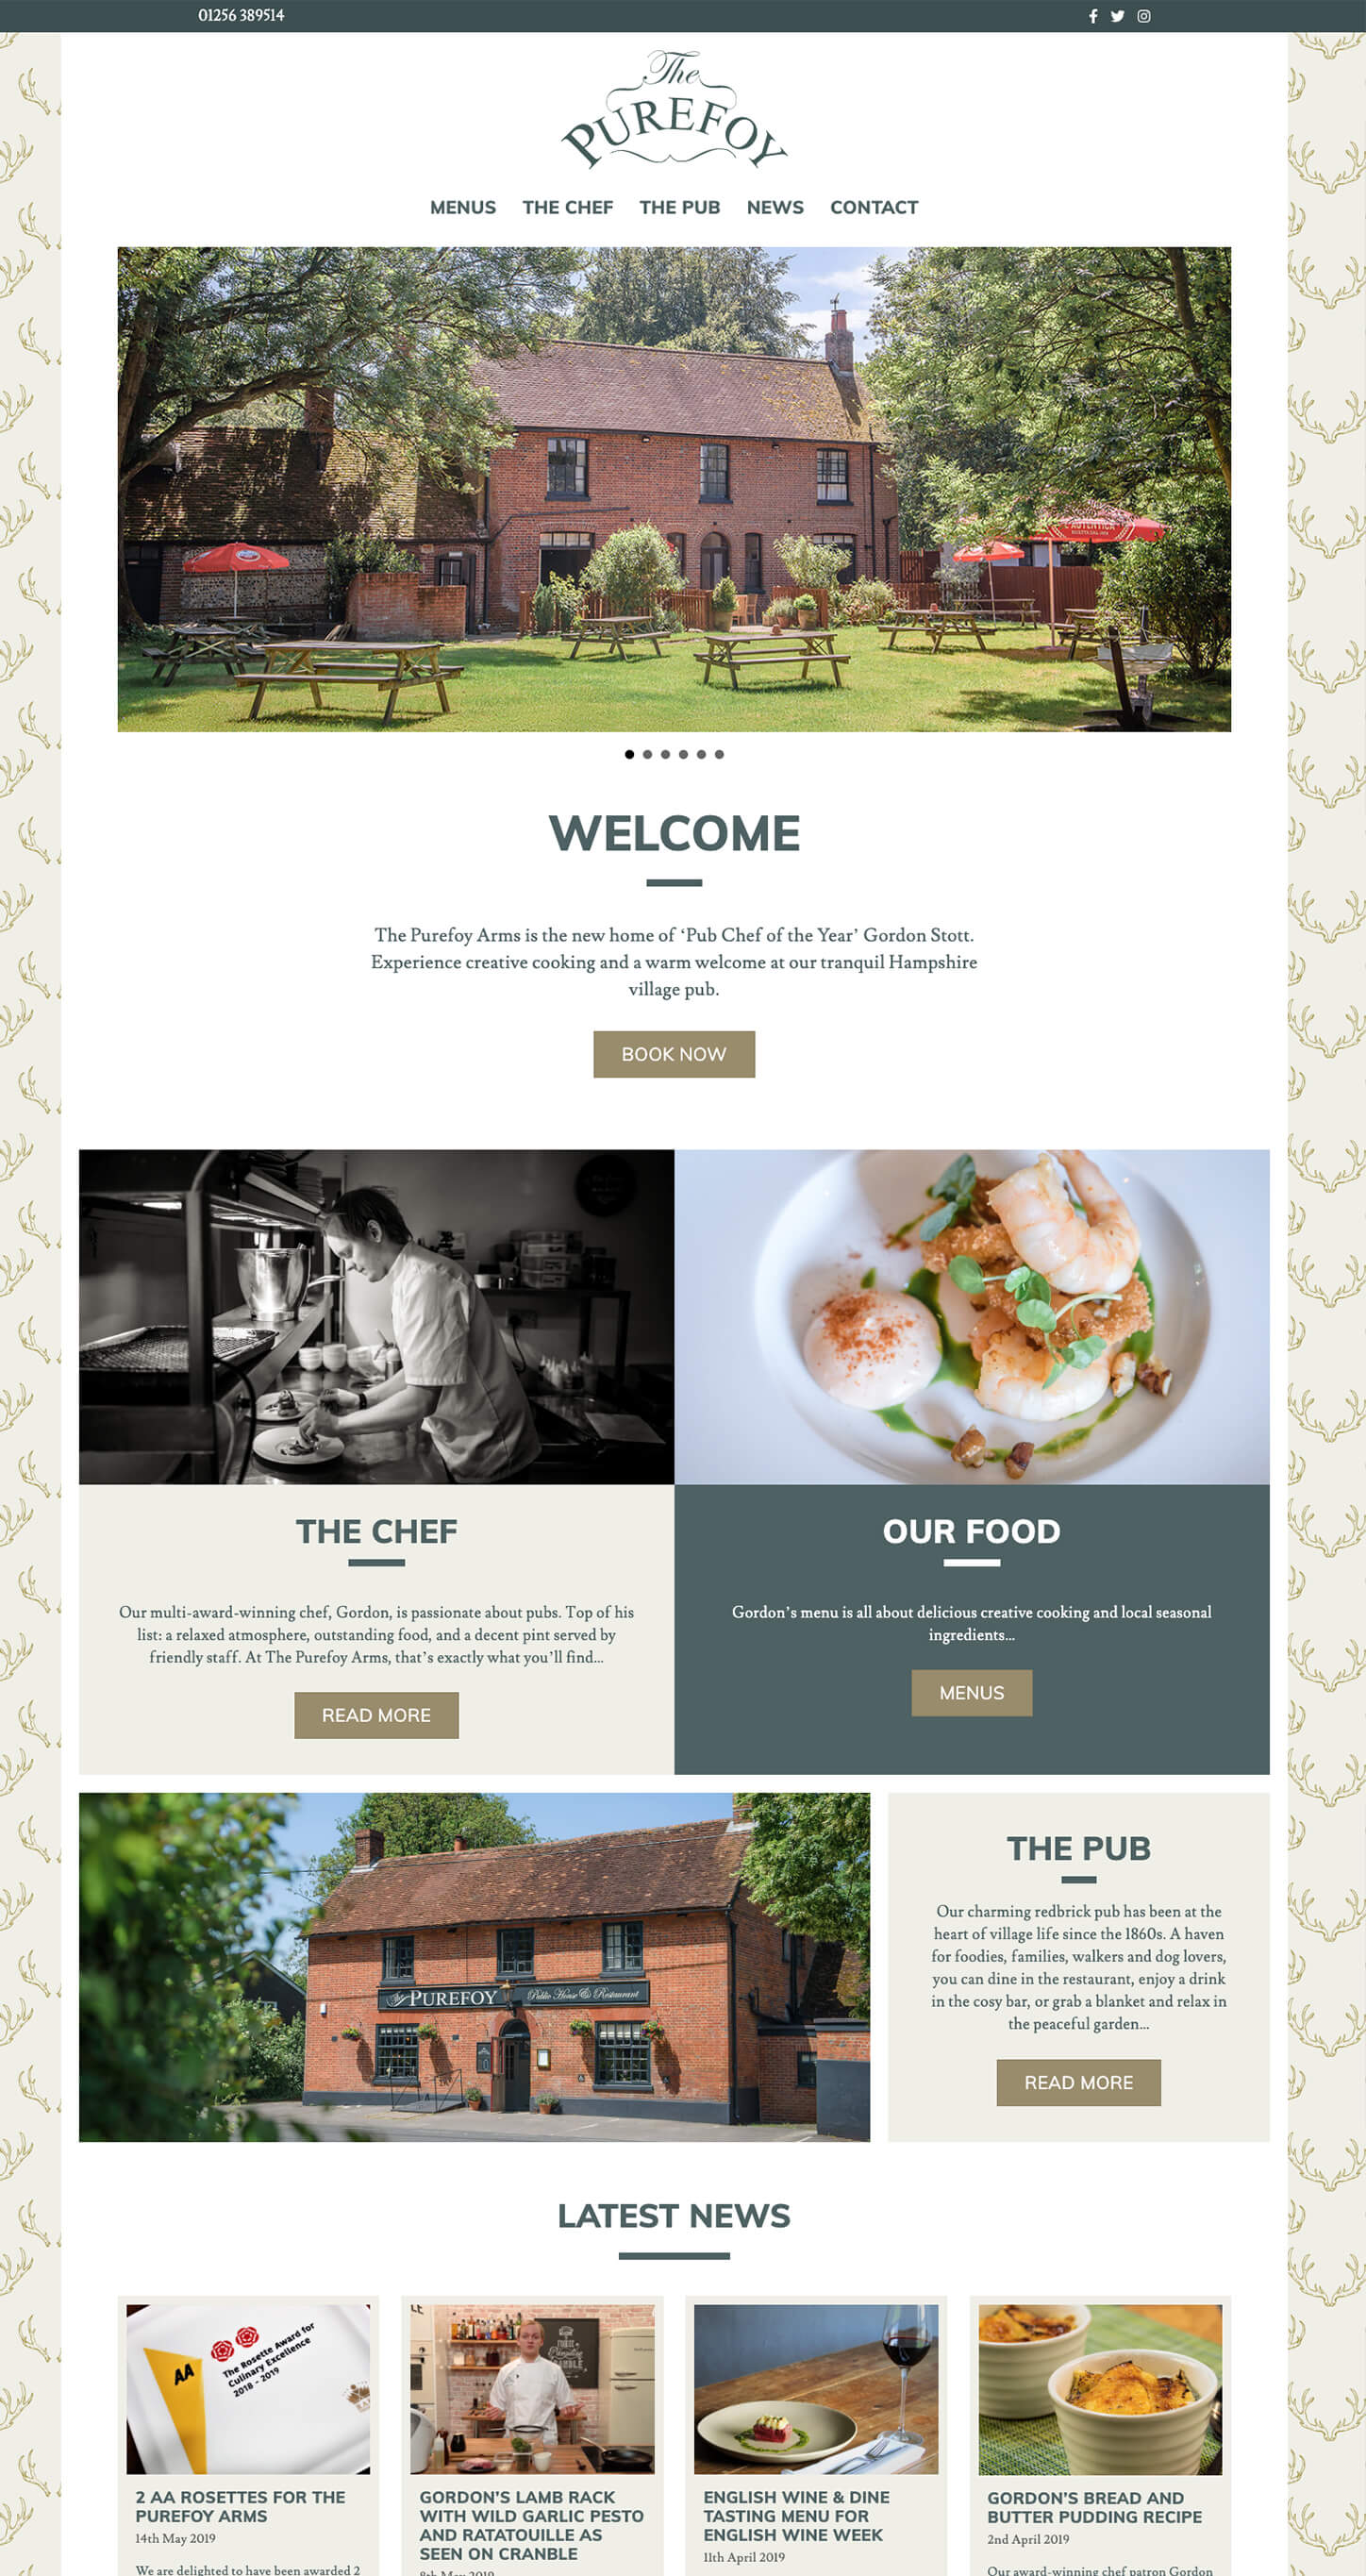 The Purefoy Arms homepage